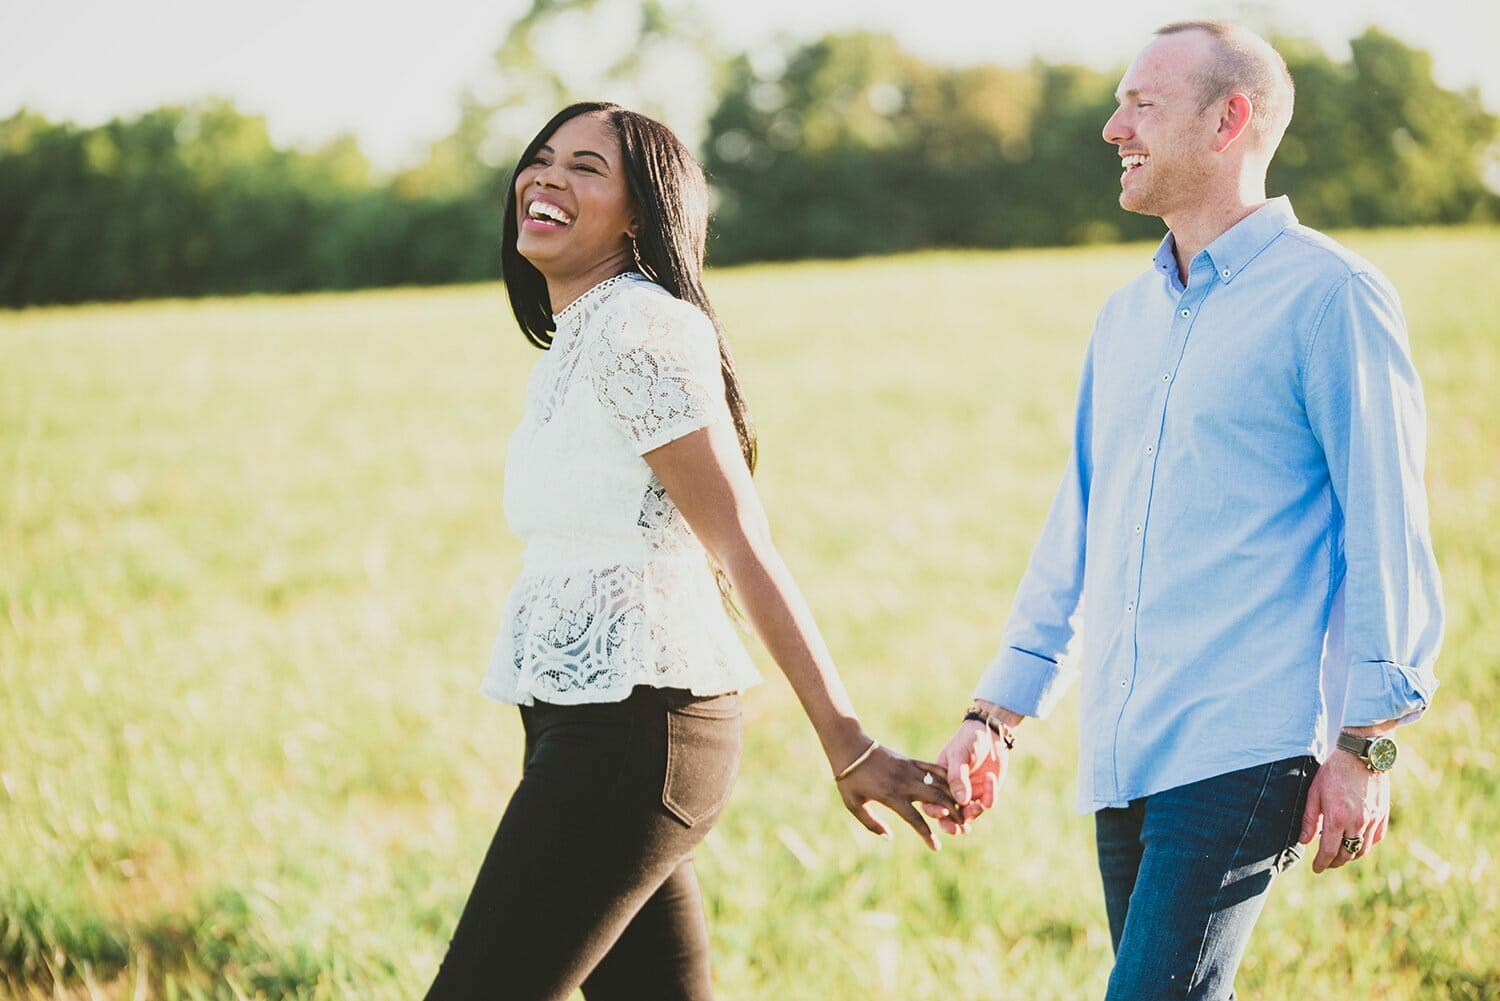 couple laughing and walking